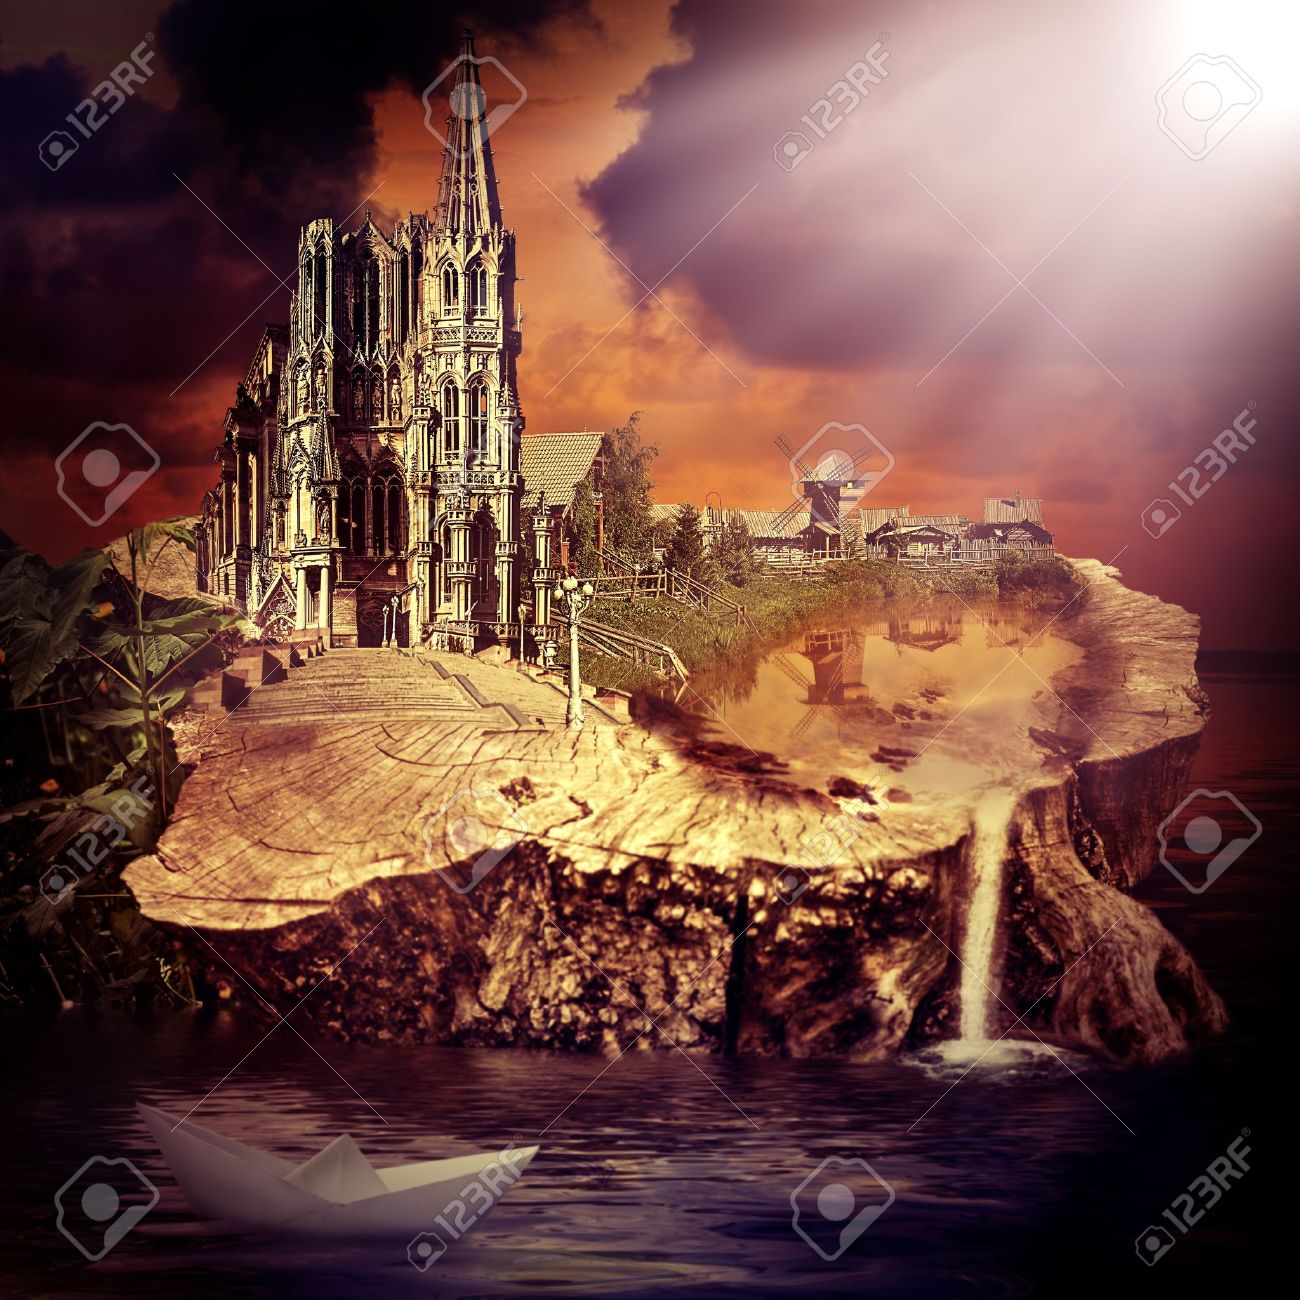 Fairy tale. fantasy castle and village on the stump in the water at sunset Stock Photo - 20234253